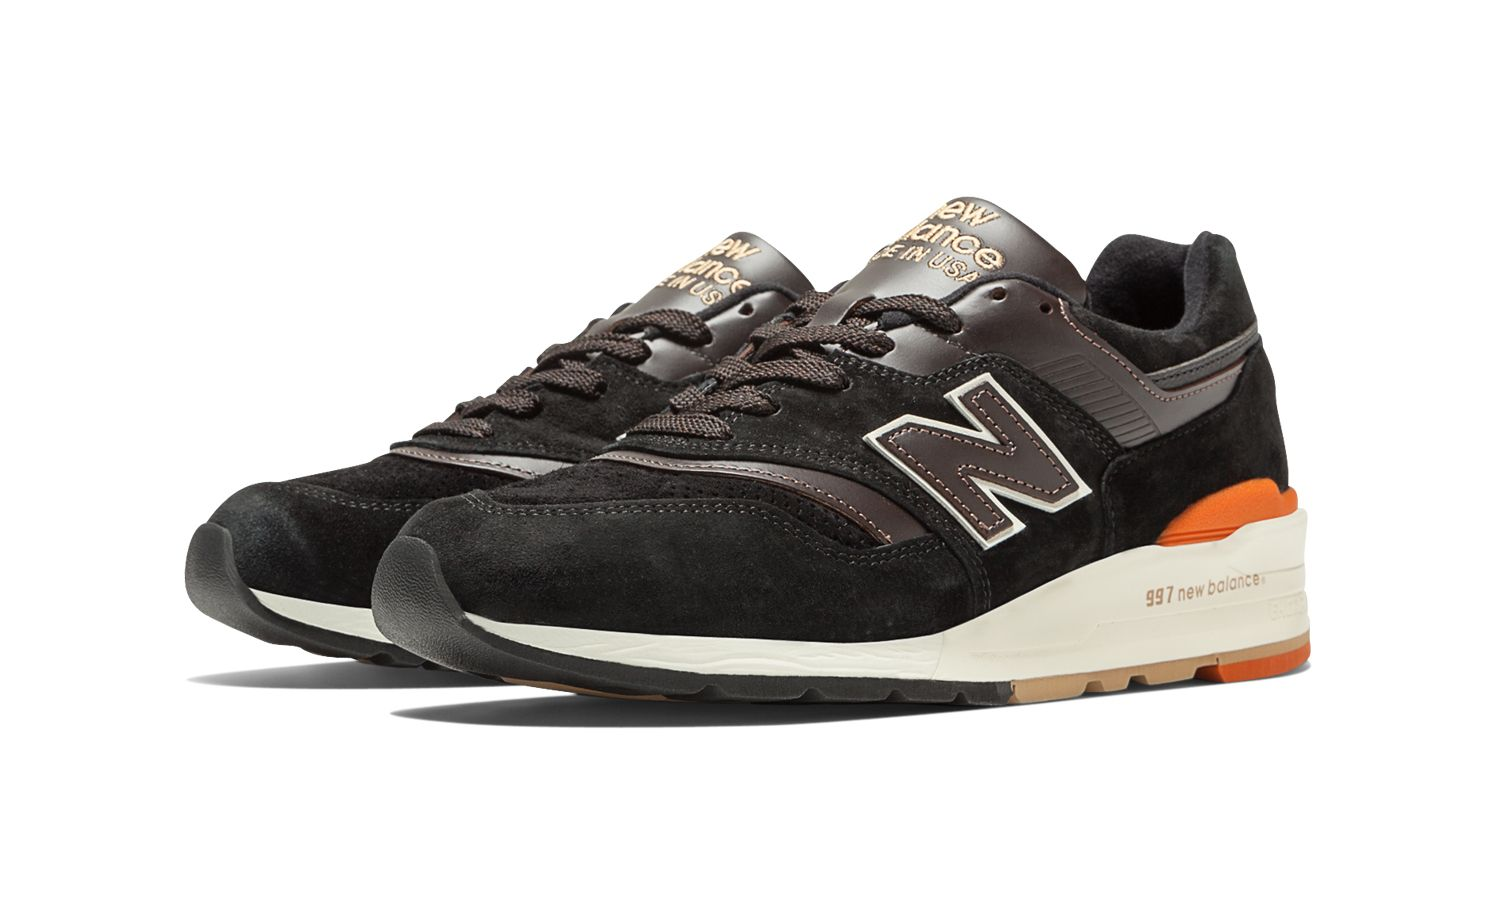 New Balance 997 Distinct